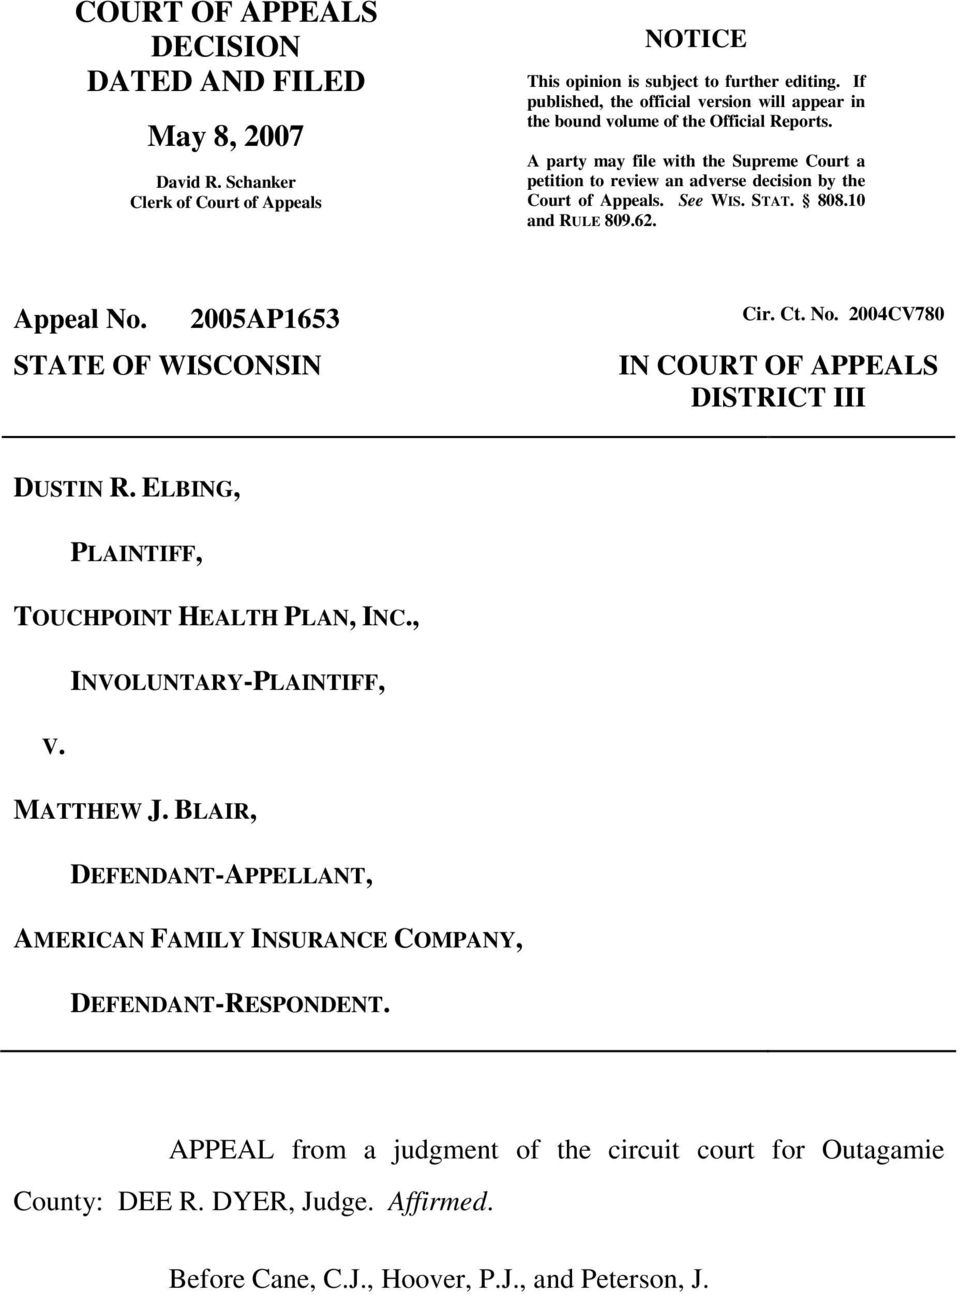 See WIS. STAT. 808.10 and RULE 809.62. Appeal No. 2005AP1653 Cir. Ct. No. 2004CV780 STATE OF WISCONSIN IN COURT OF APPEALS DISTRICT III DUSTIN R. ELBING, PLAINTIFF, TOUCHPOINT HEALTH PLAN, INC.